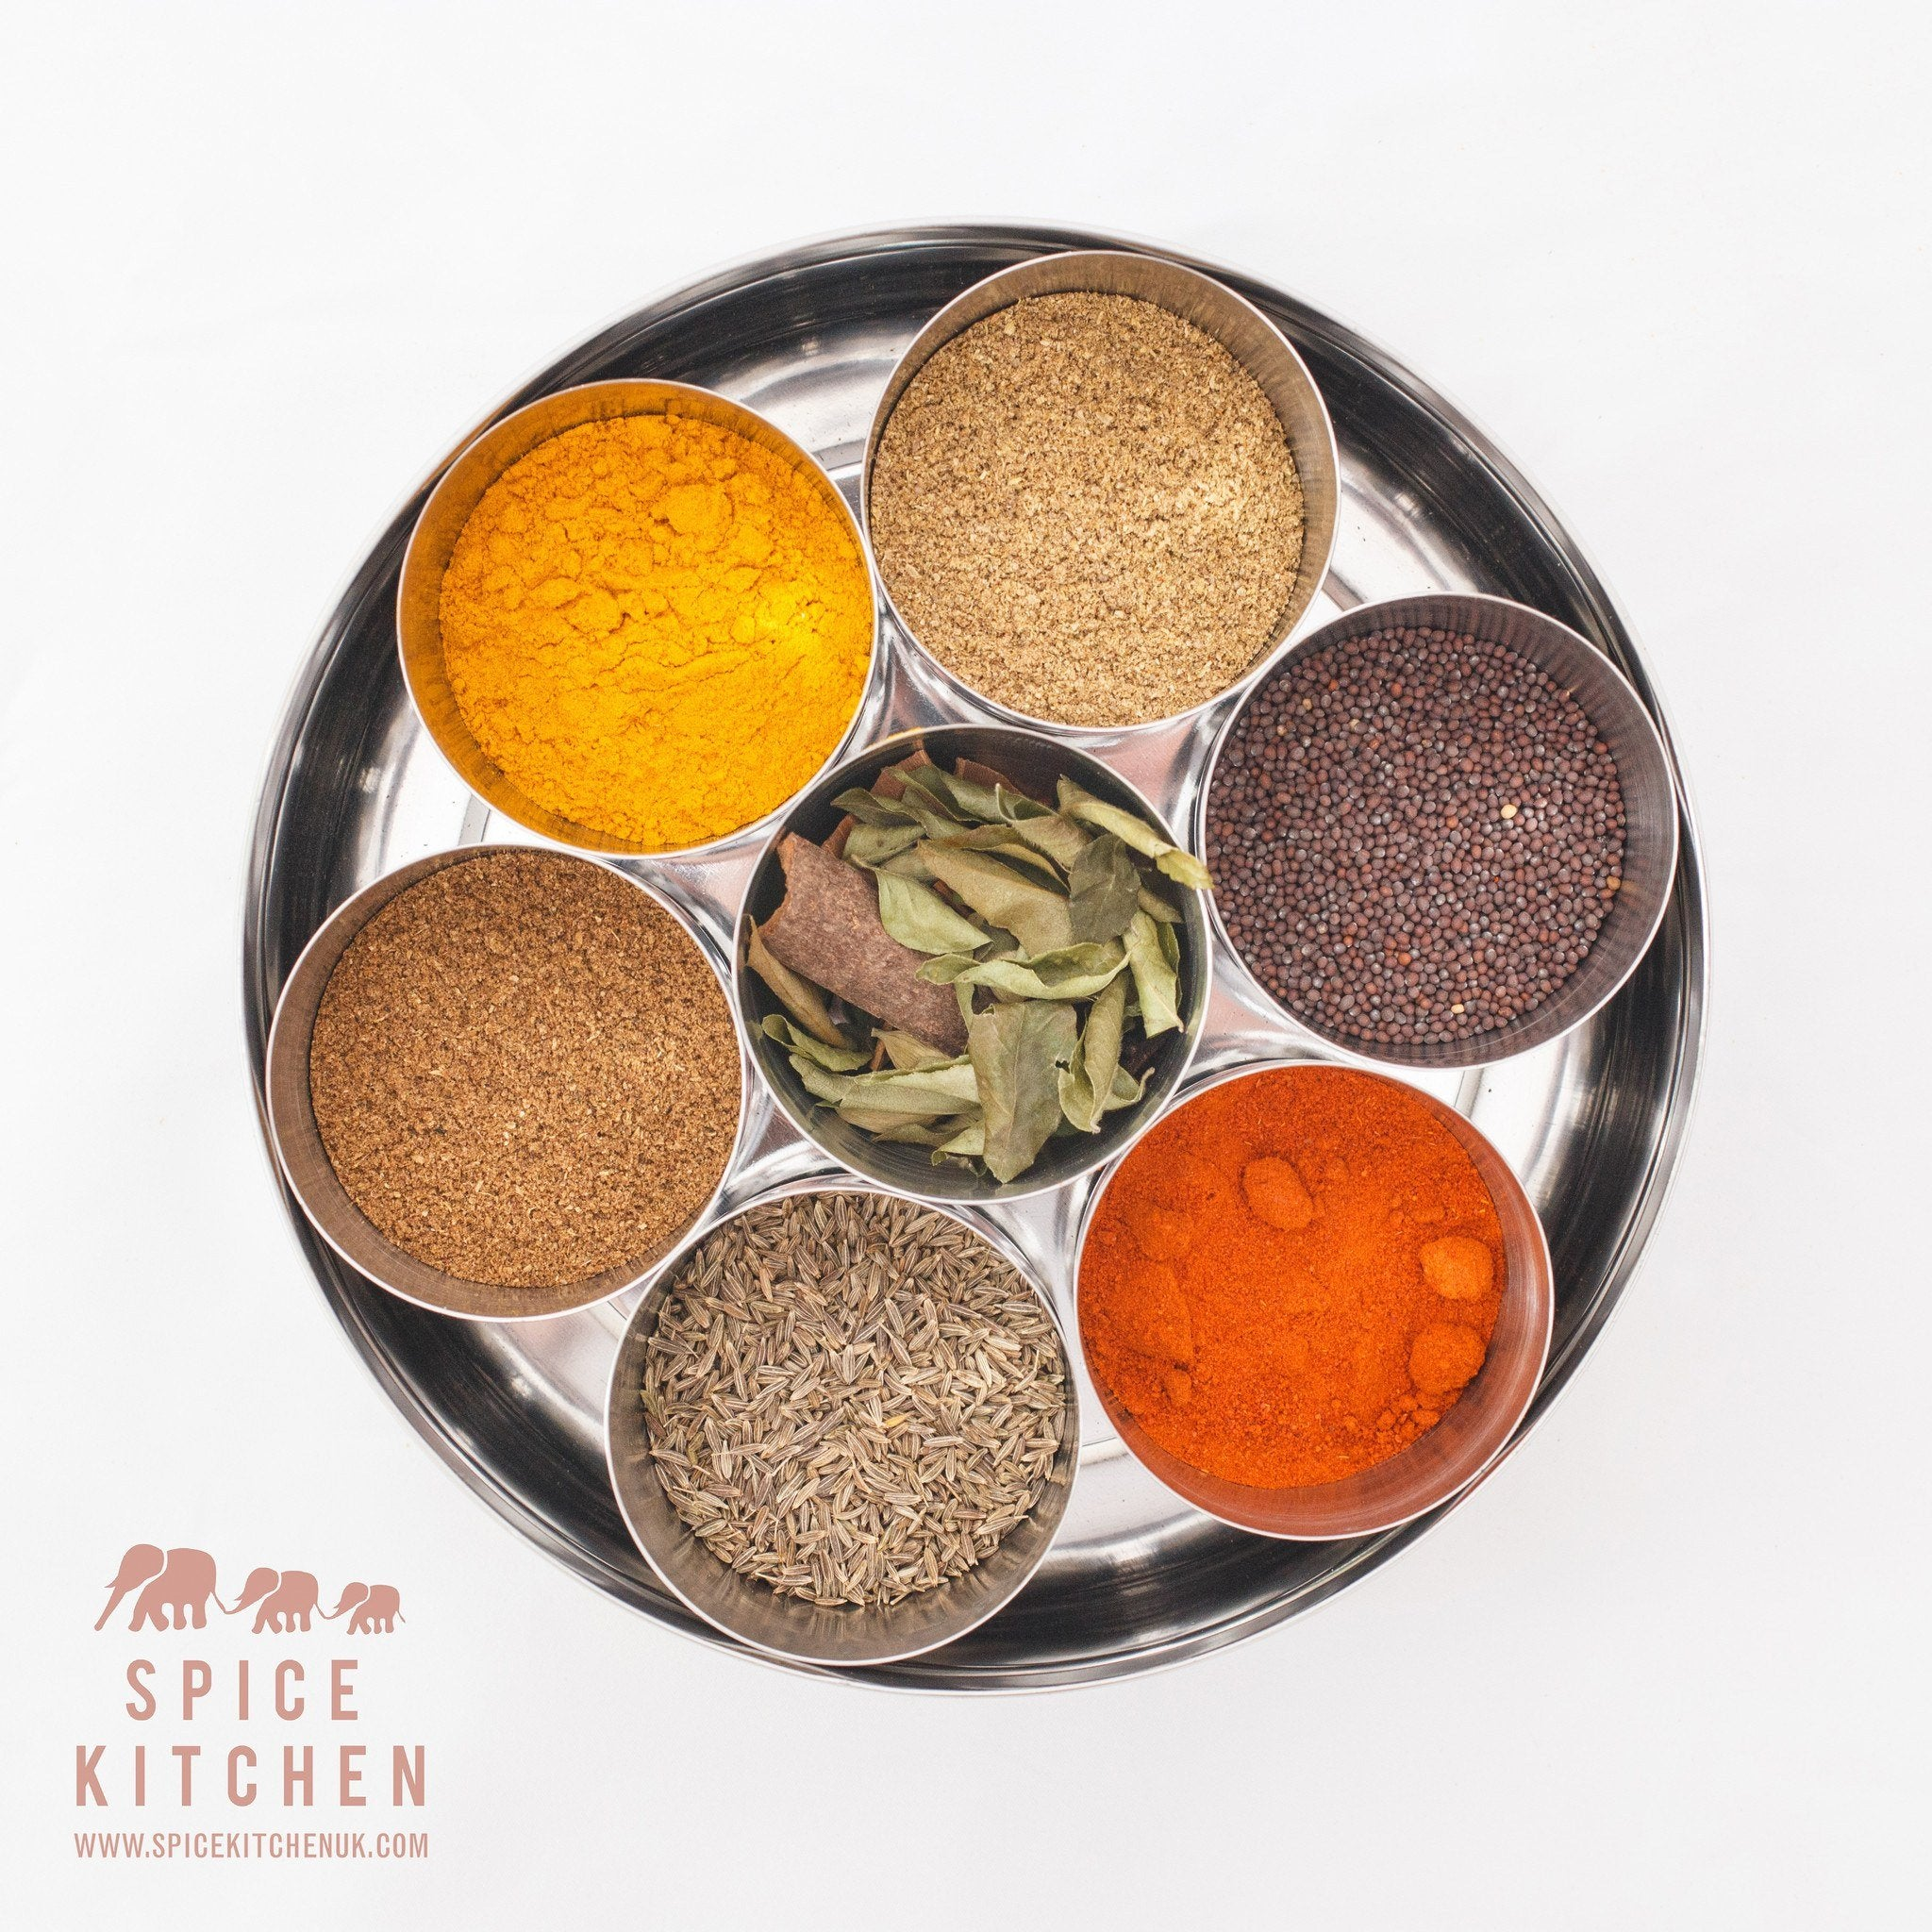 Indian Spice Tin With 10 Spices - Spice Kitchen - Spices, Spice Blends, Gifts & Cookware